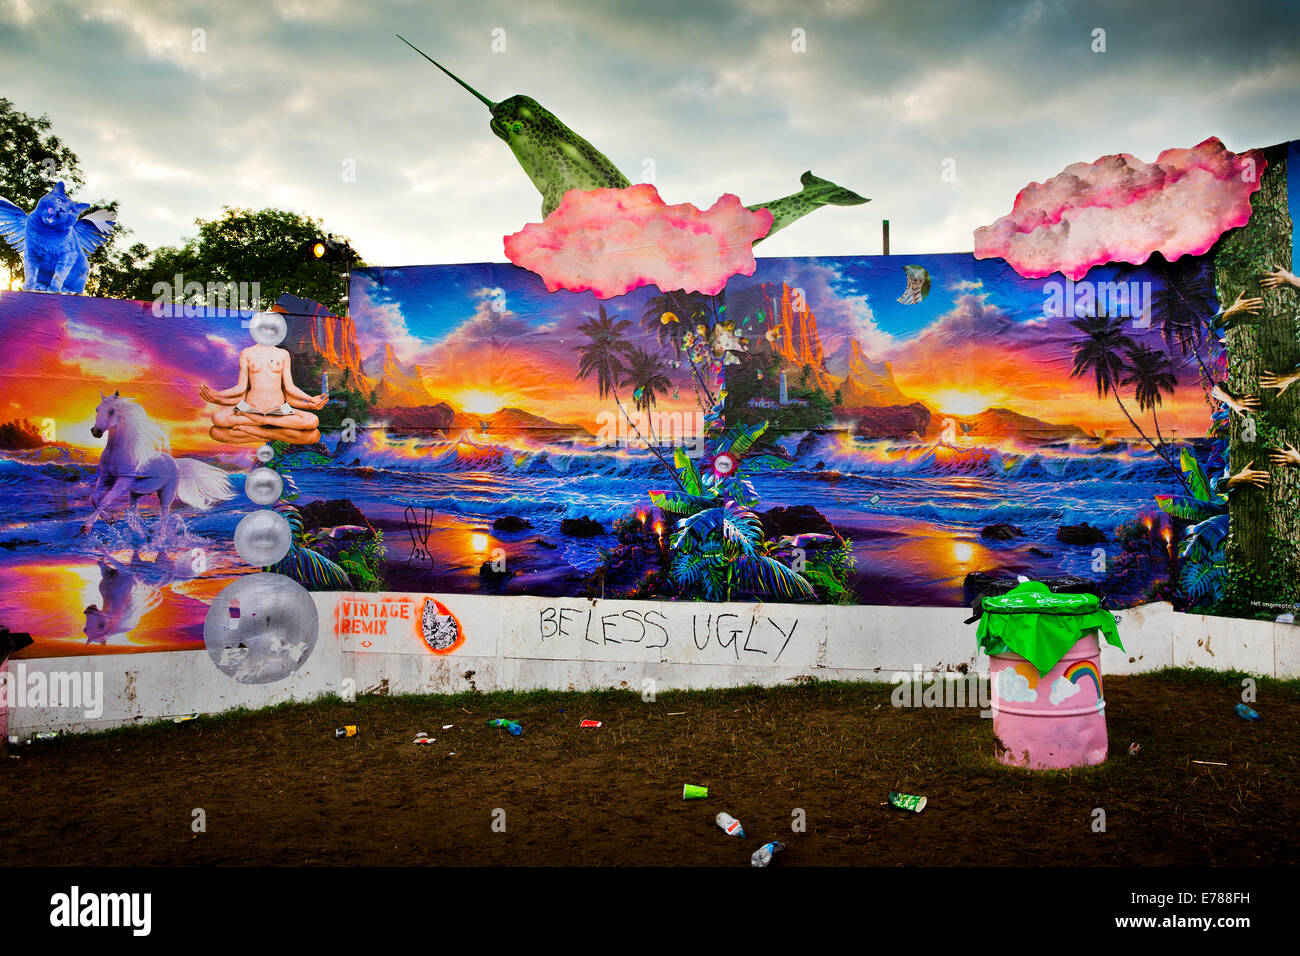 Glastonbury Festival 2014. Evolving graphic walls by Link Leisure give a dream like quality as you enter Shangri - Stock Image